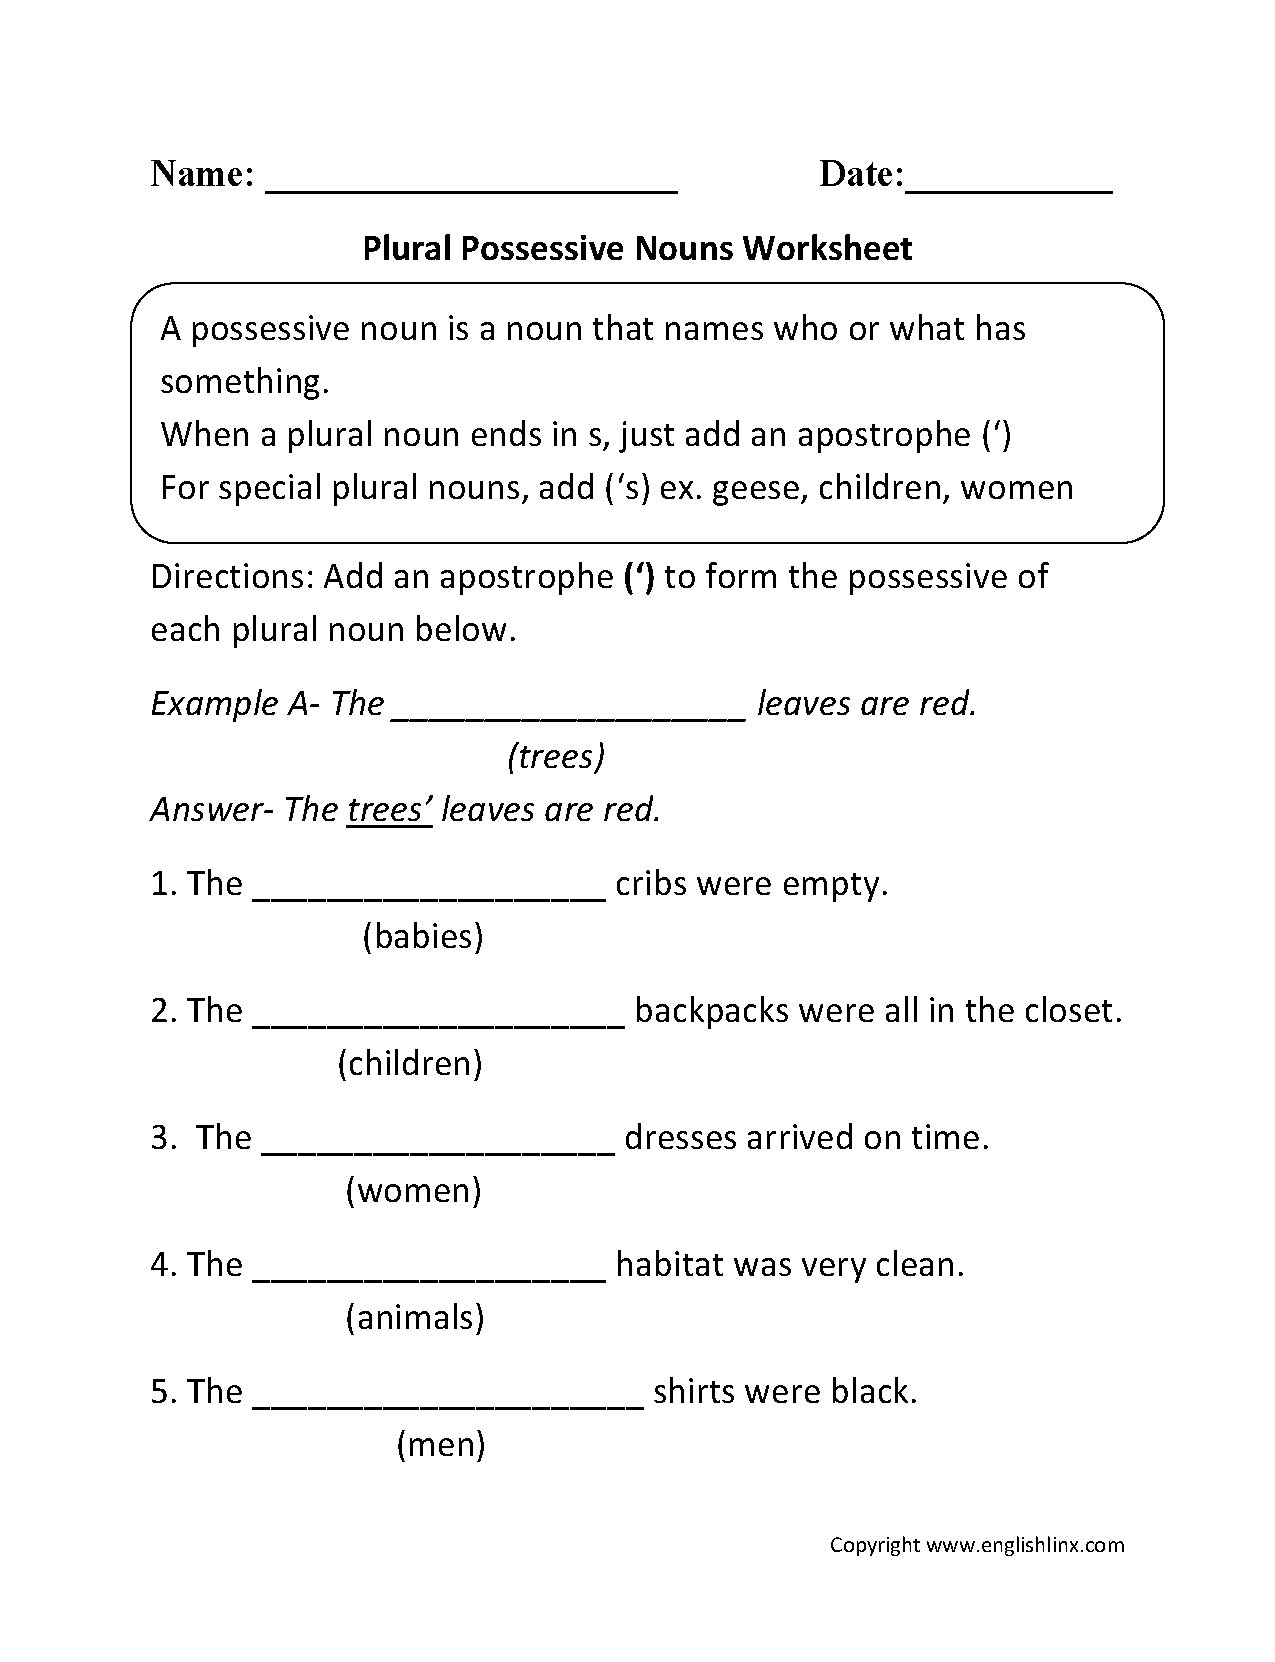 Aldiablosus  Winning Nouns Worksheets  Possessive Nouns Worksheets With Marvelous Possessive Nouns Worksheets With Divine Finding Area Worksheets Also Th Grade Vocabulary Worksheets In Addition Stem Changing Verbs Worksheet And Adding And Subtracting Rational Expressions Worksheet With Answers As Well As Manual J Worksheet Additionally Finding Equivalent Fractions Worksheets From Englishlinxcom With Aldiablosus  Marvelous Nouns Worksheets  Possessive Nouns Worksheets With Divine Possessive Nouns Worksheets And Winning Finding Area Worksheets Also Th Grade Vocabulary Worksheets In Addition Stem Changing Verbs Worksheet From Englishlinxcom